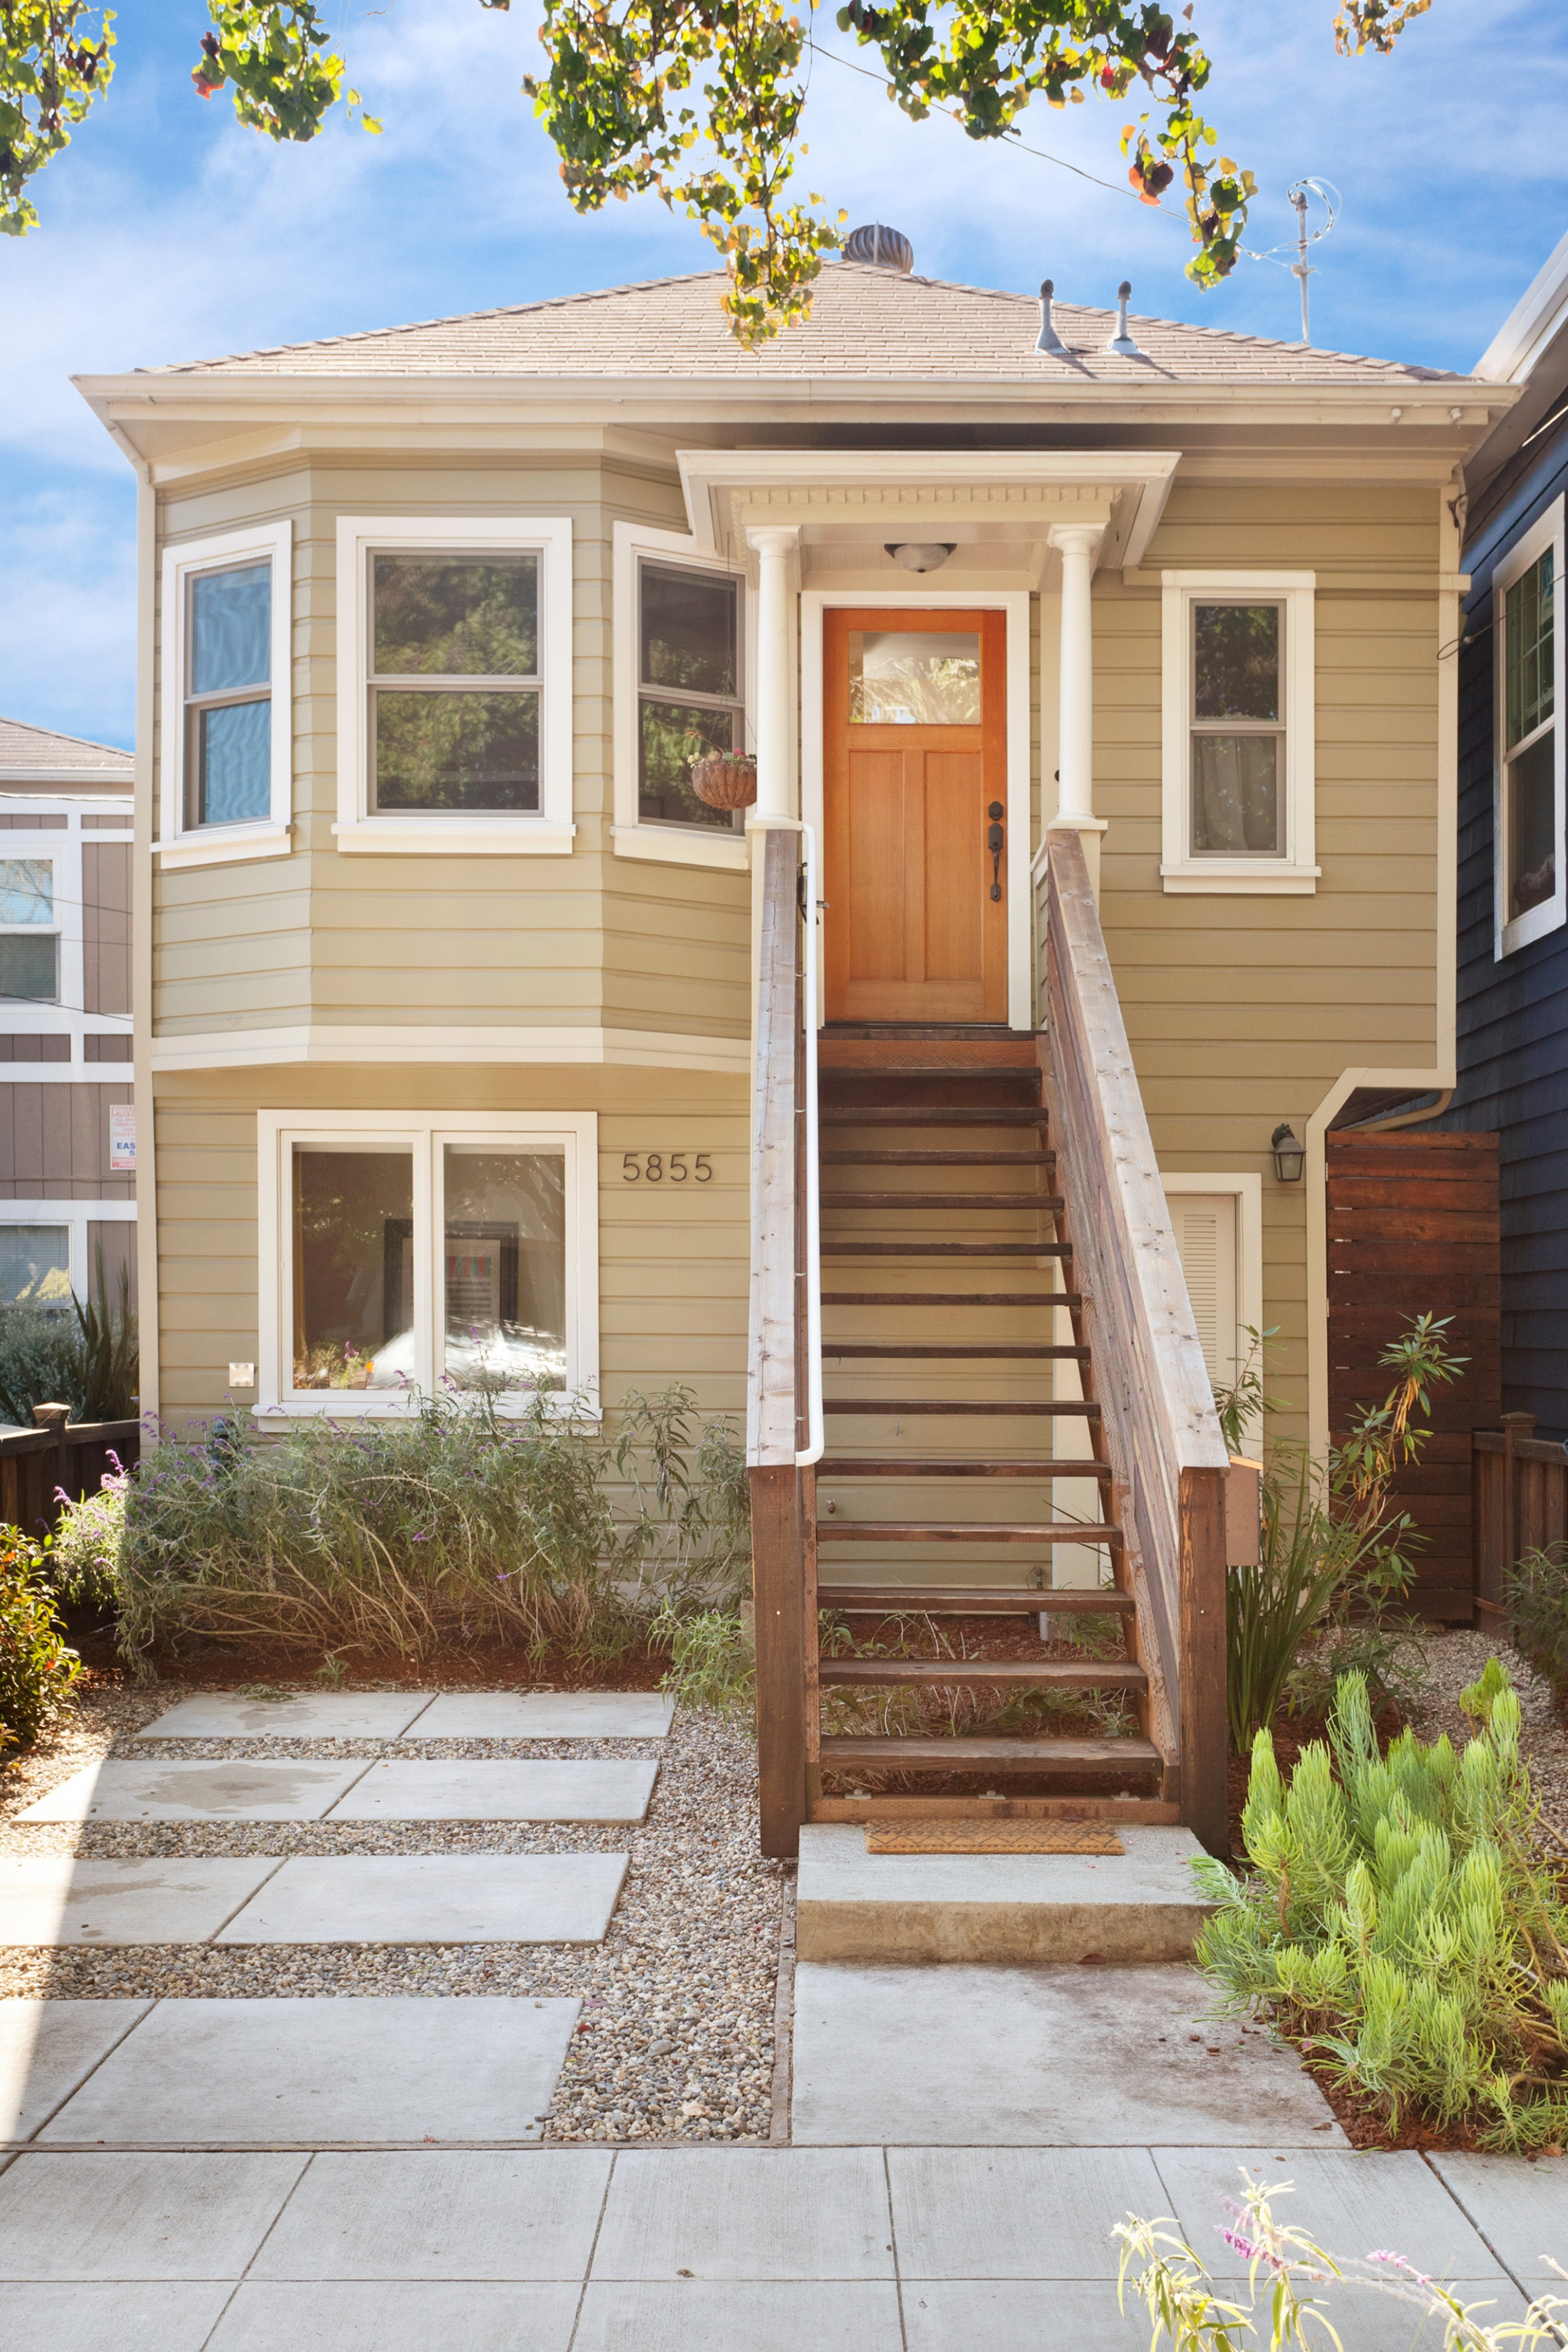 SOLD | 5855 VALLEJO STREET, EMERYVILLE $950,000